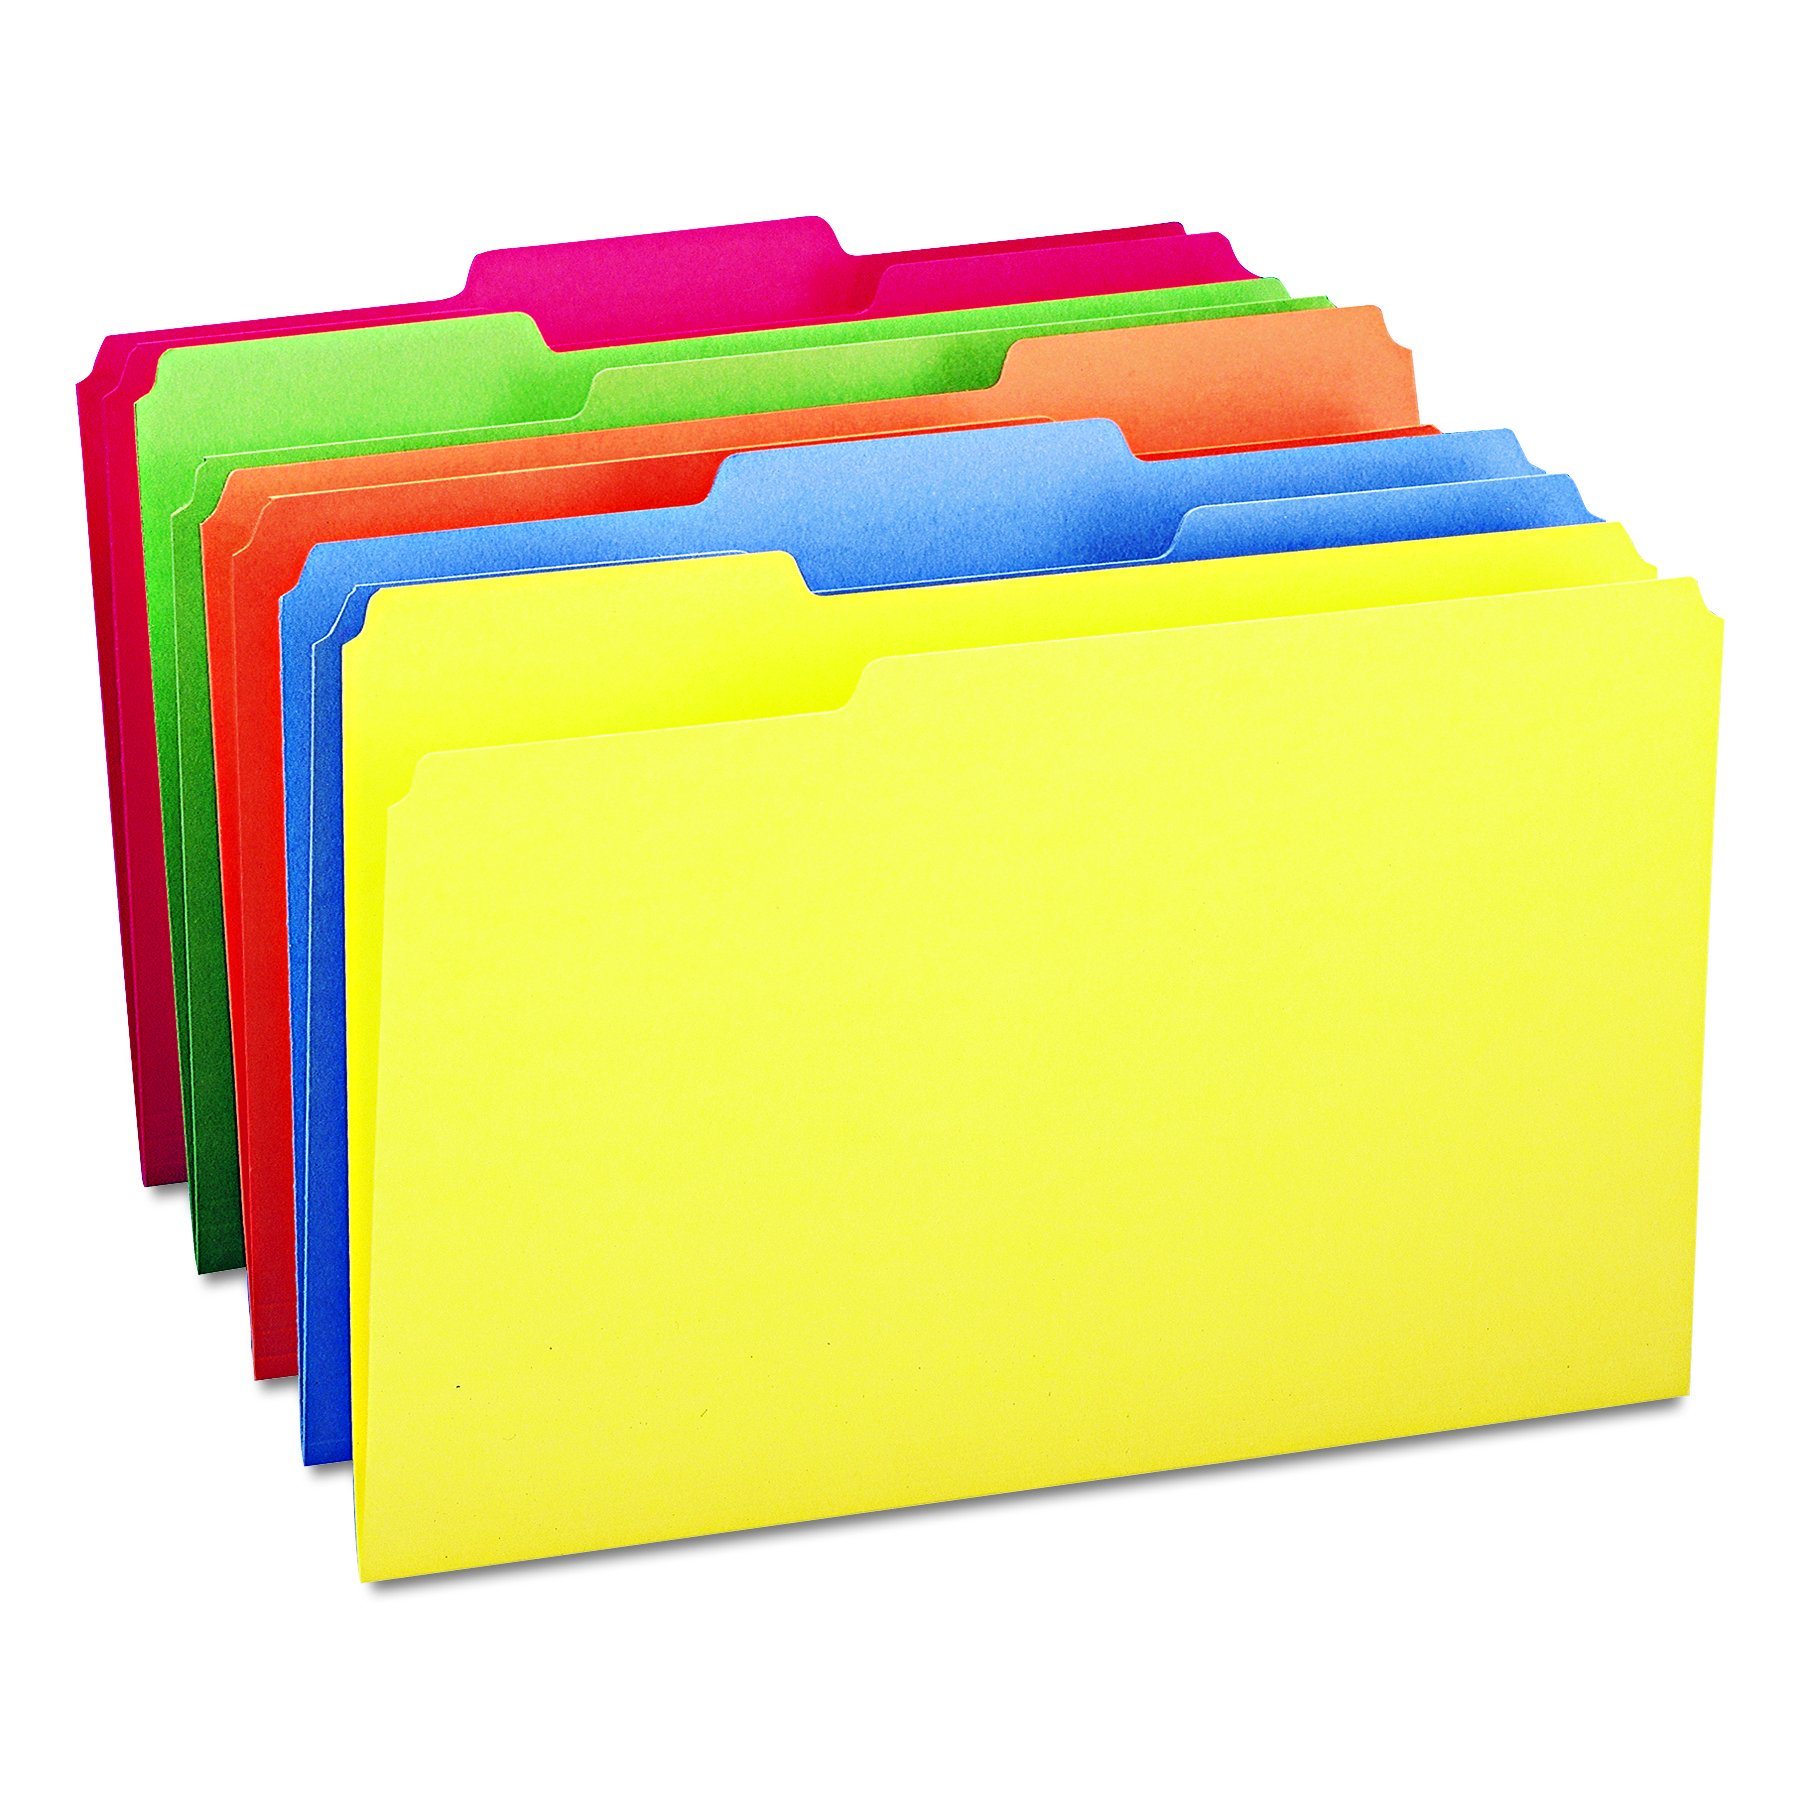 Smead File Folder, 1/3-Cut Tab, Legal Size, Assorted Colors, 100 per Box (16943) by Smead